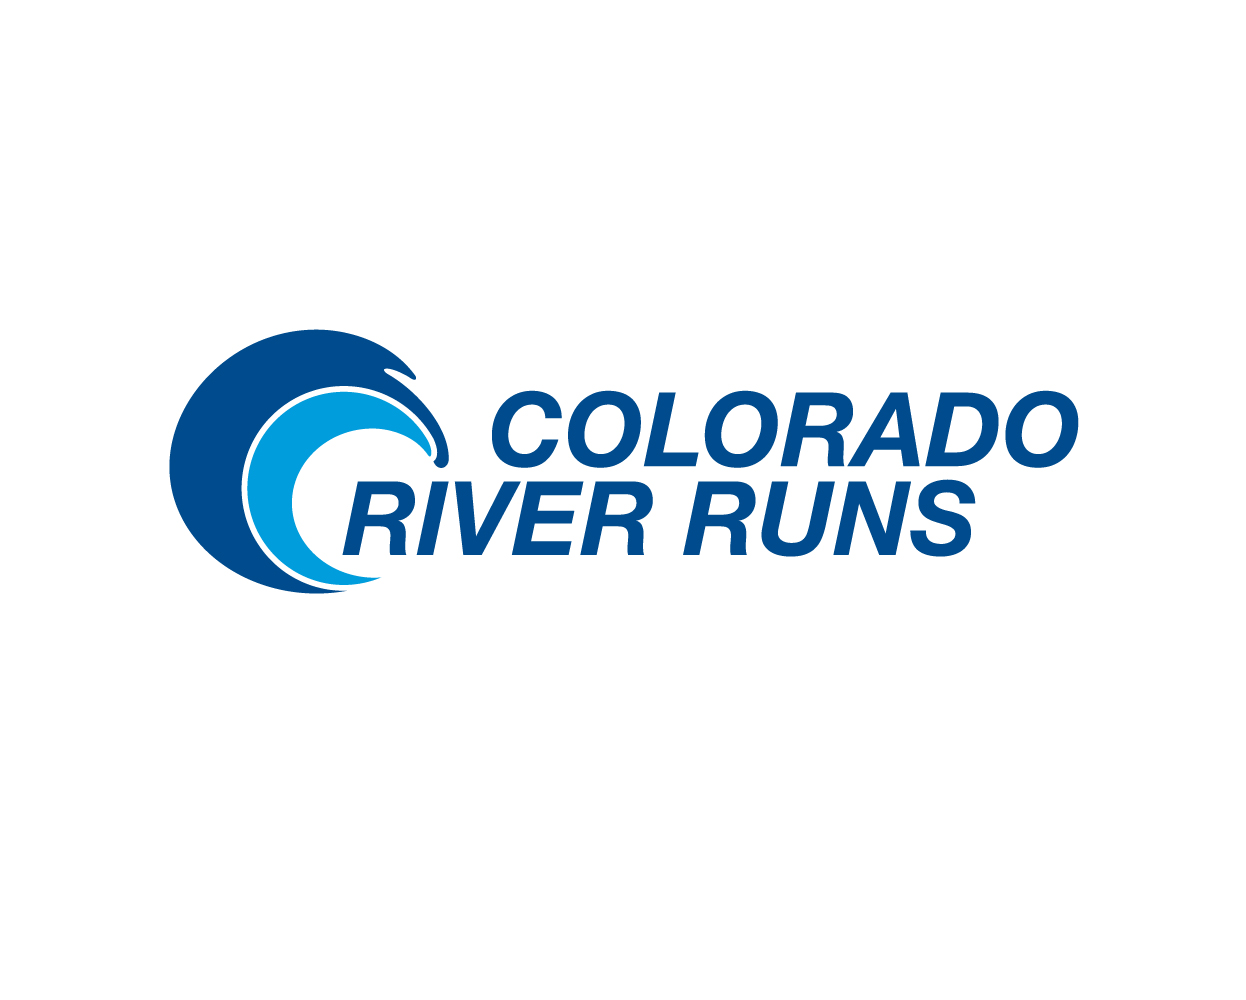 Colorado River Runs | Identity